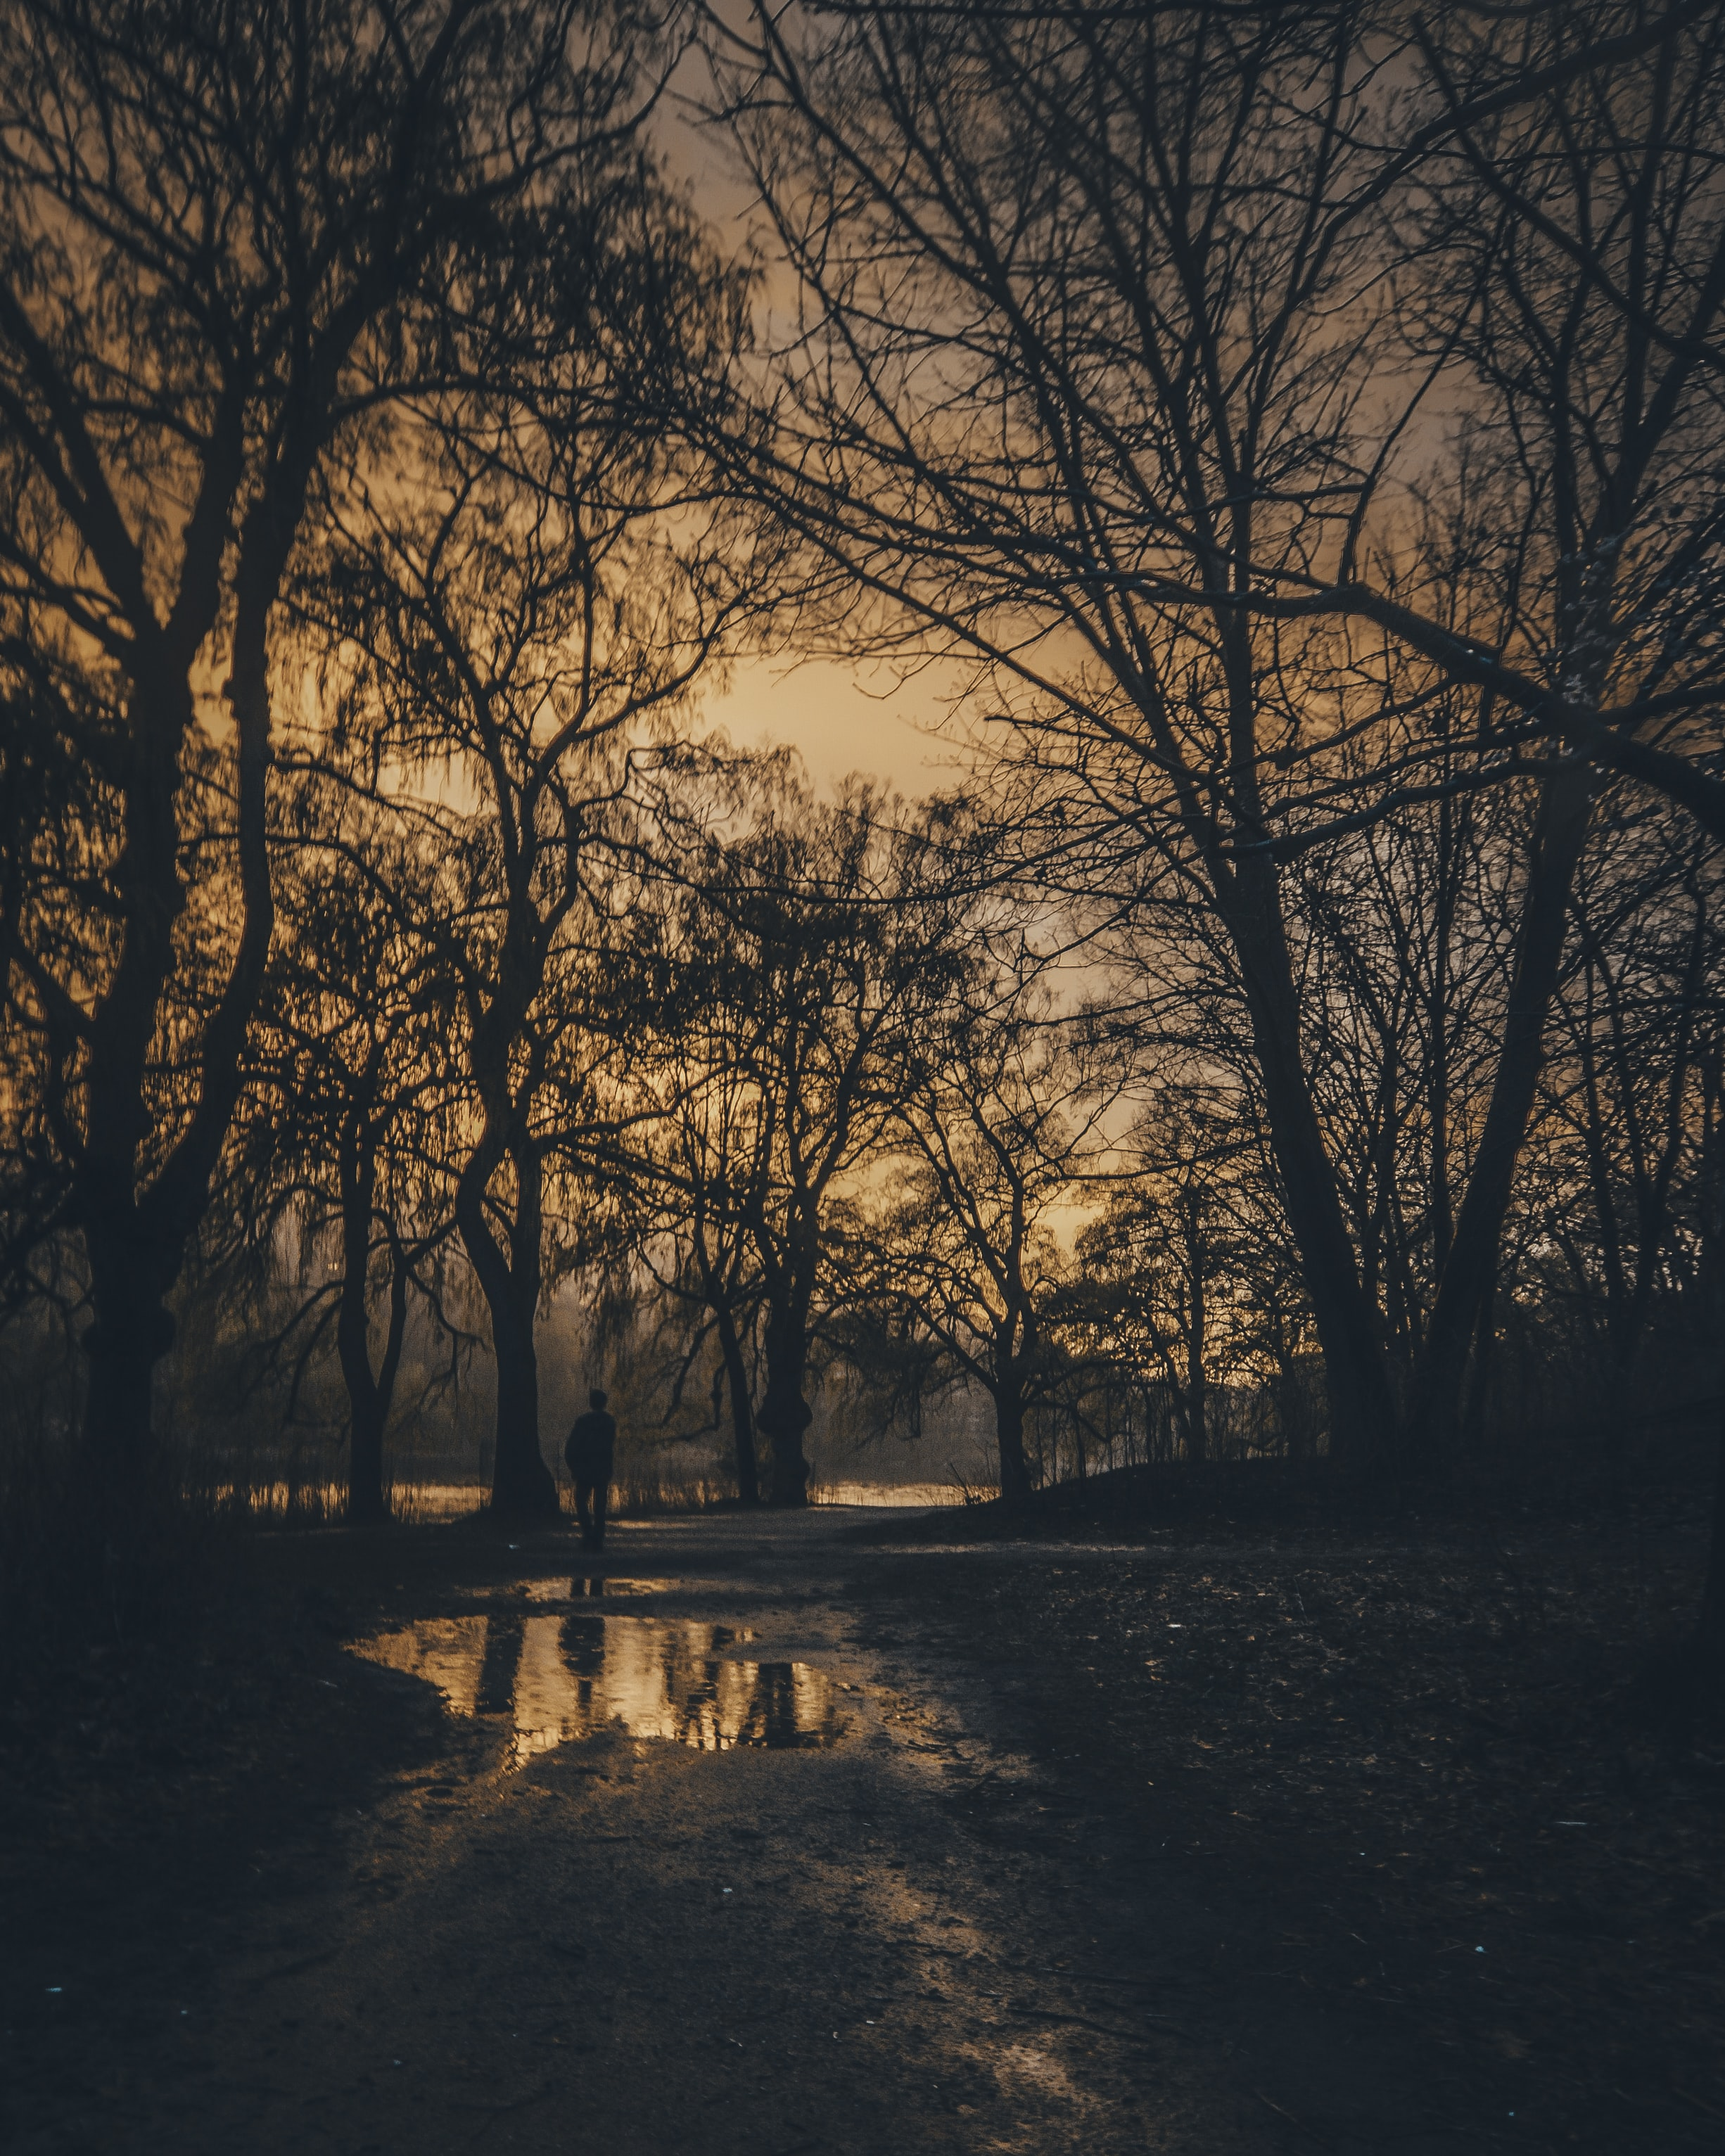 The sun sets over Toronto's High Park as a man walks through the trees, his silhouette reflecting upon a puddle